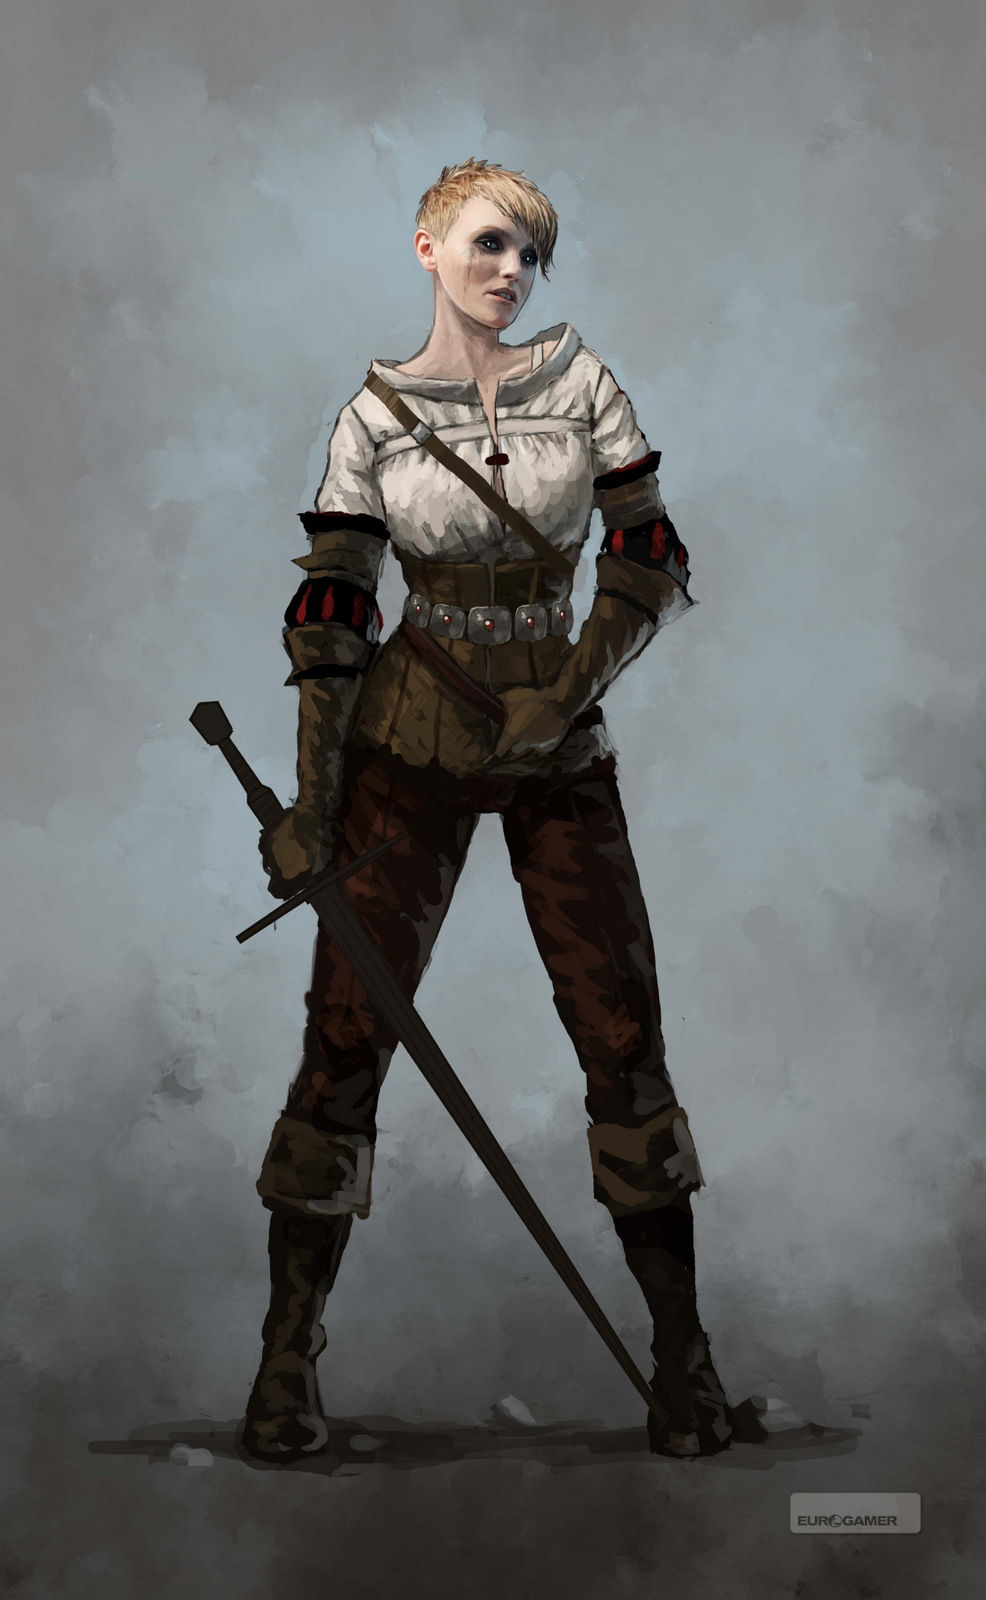 https://orig00.deviantart.net/1481/f/2015/233/5/3/ciri_early_concept_8_by_scratcherpen-d96k70l.jpg